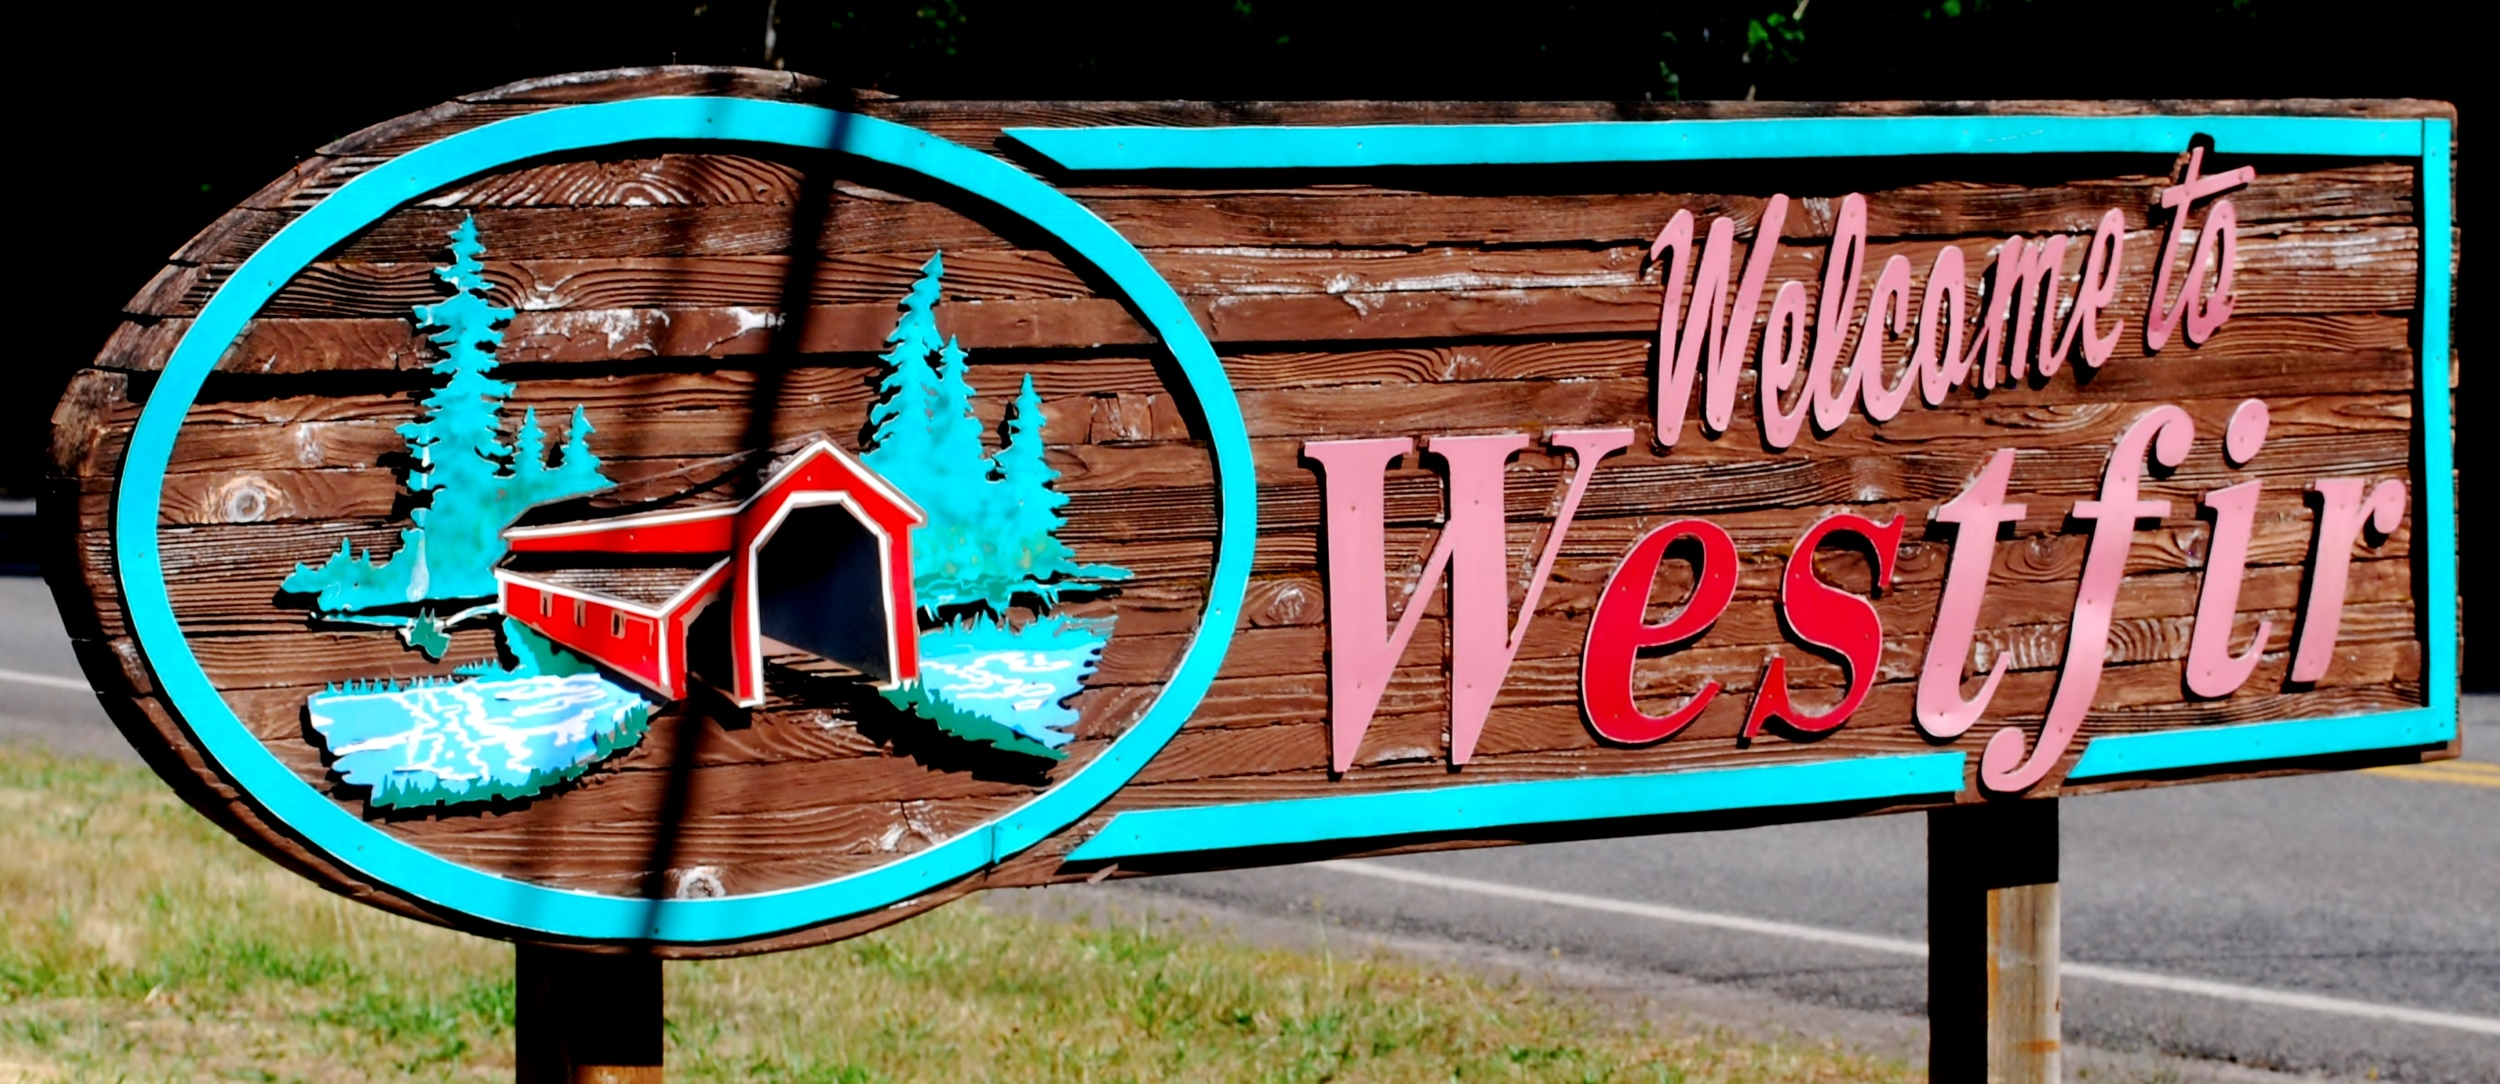 Welcome to Westfir, OR